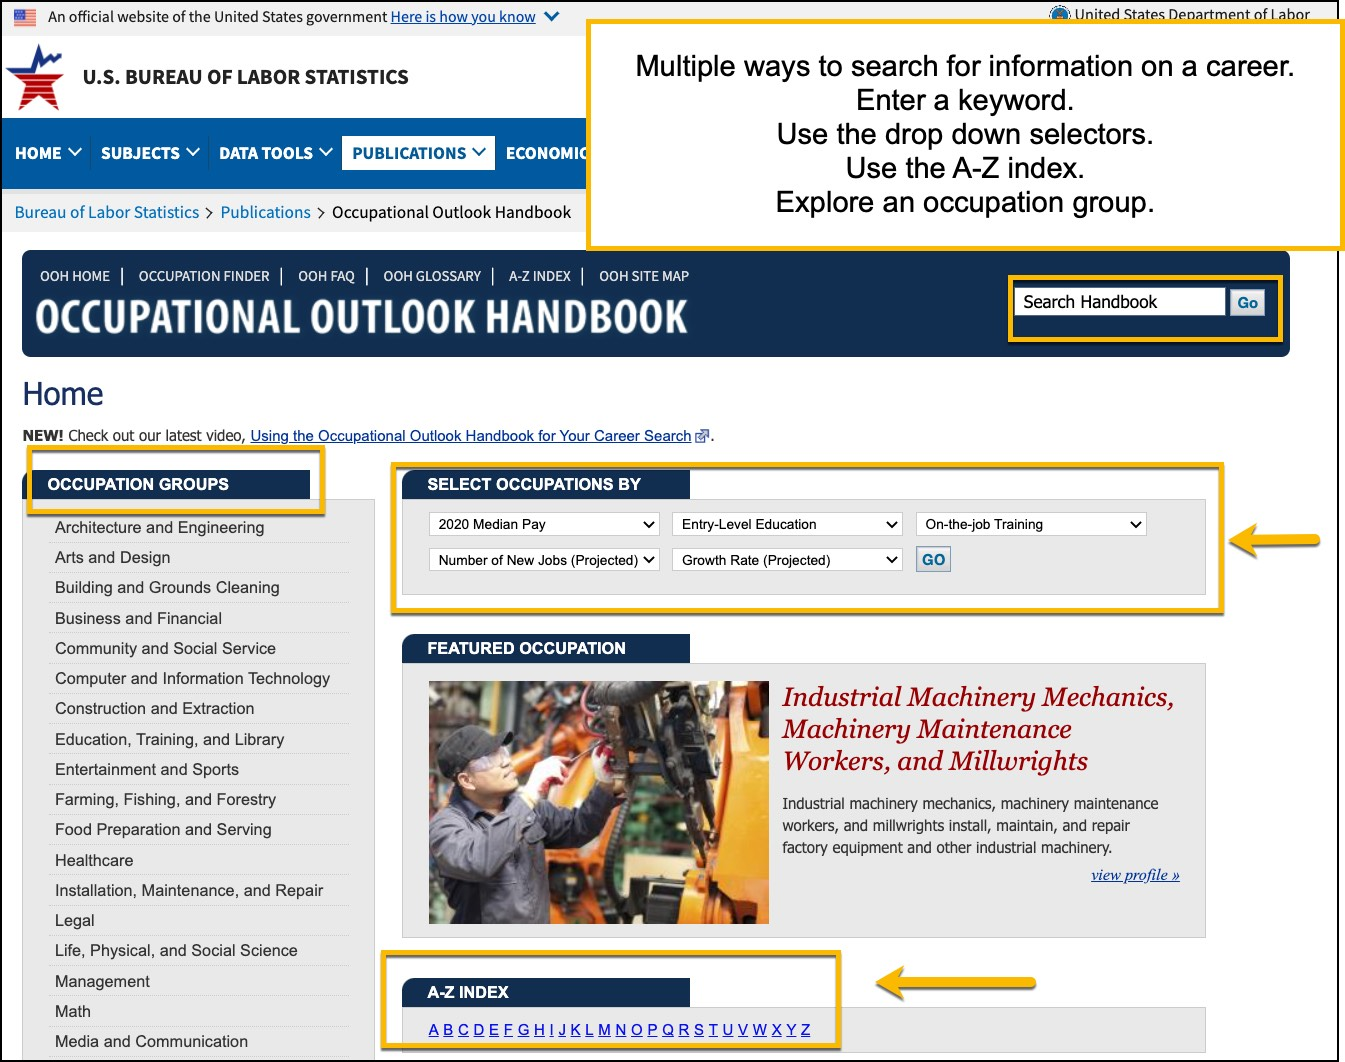 Image of occupational outlook handbook landing page. Highlighted are spaced to enter a keyword, search by dropdown, explore a career.